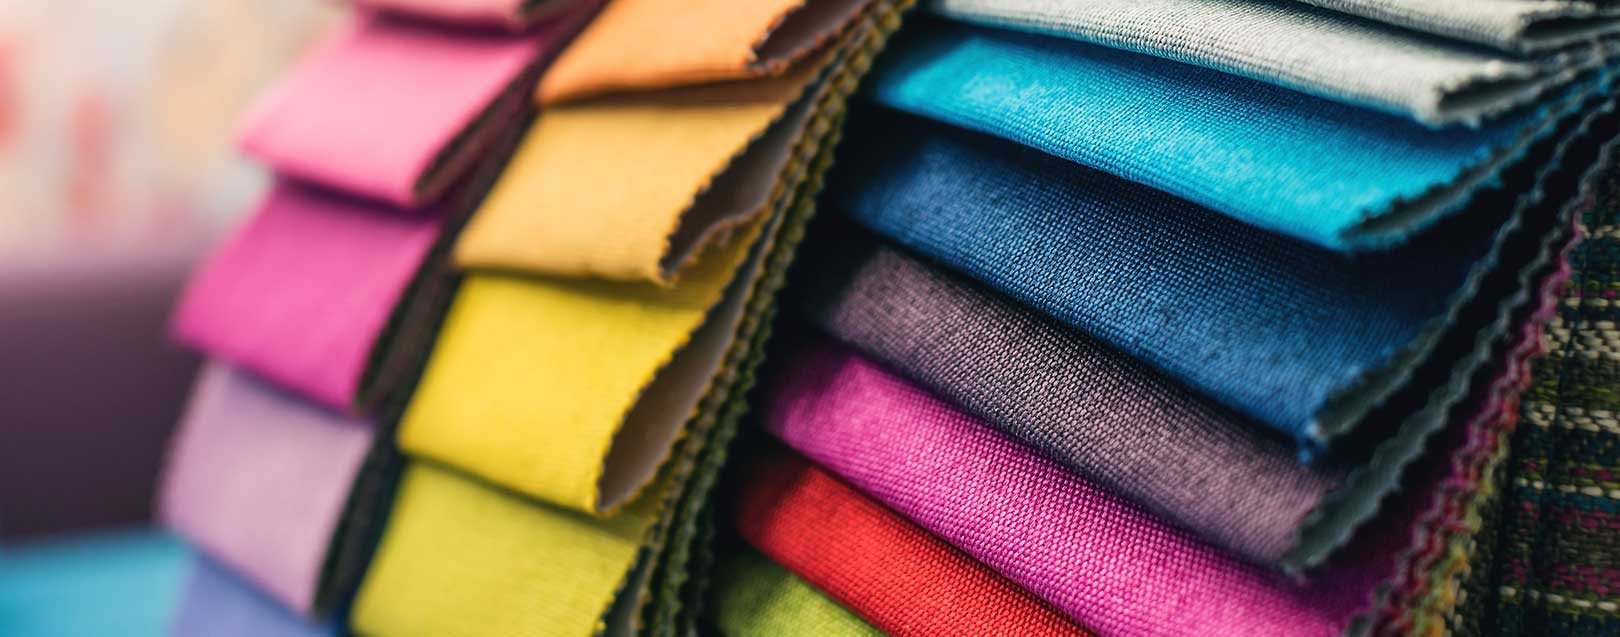 Textile exports fall 4.5% to $26 bn in Apr-Dec